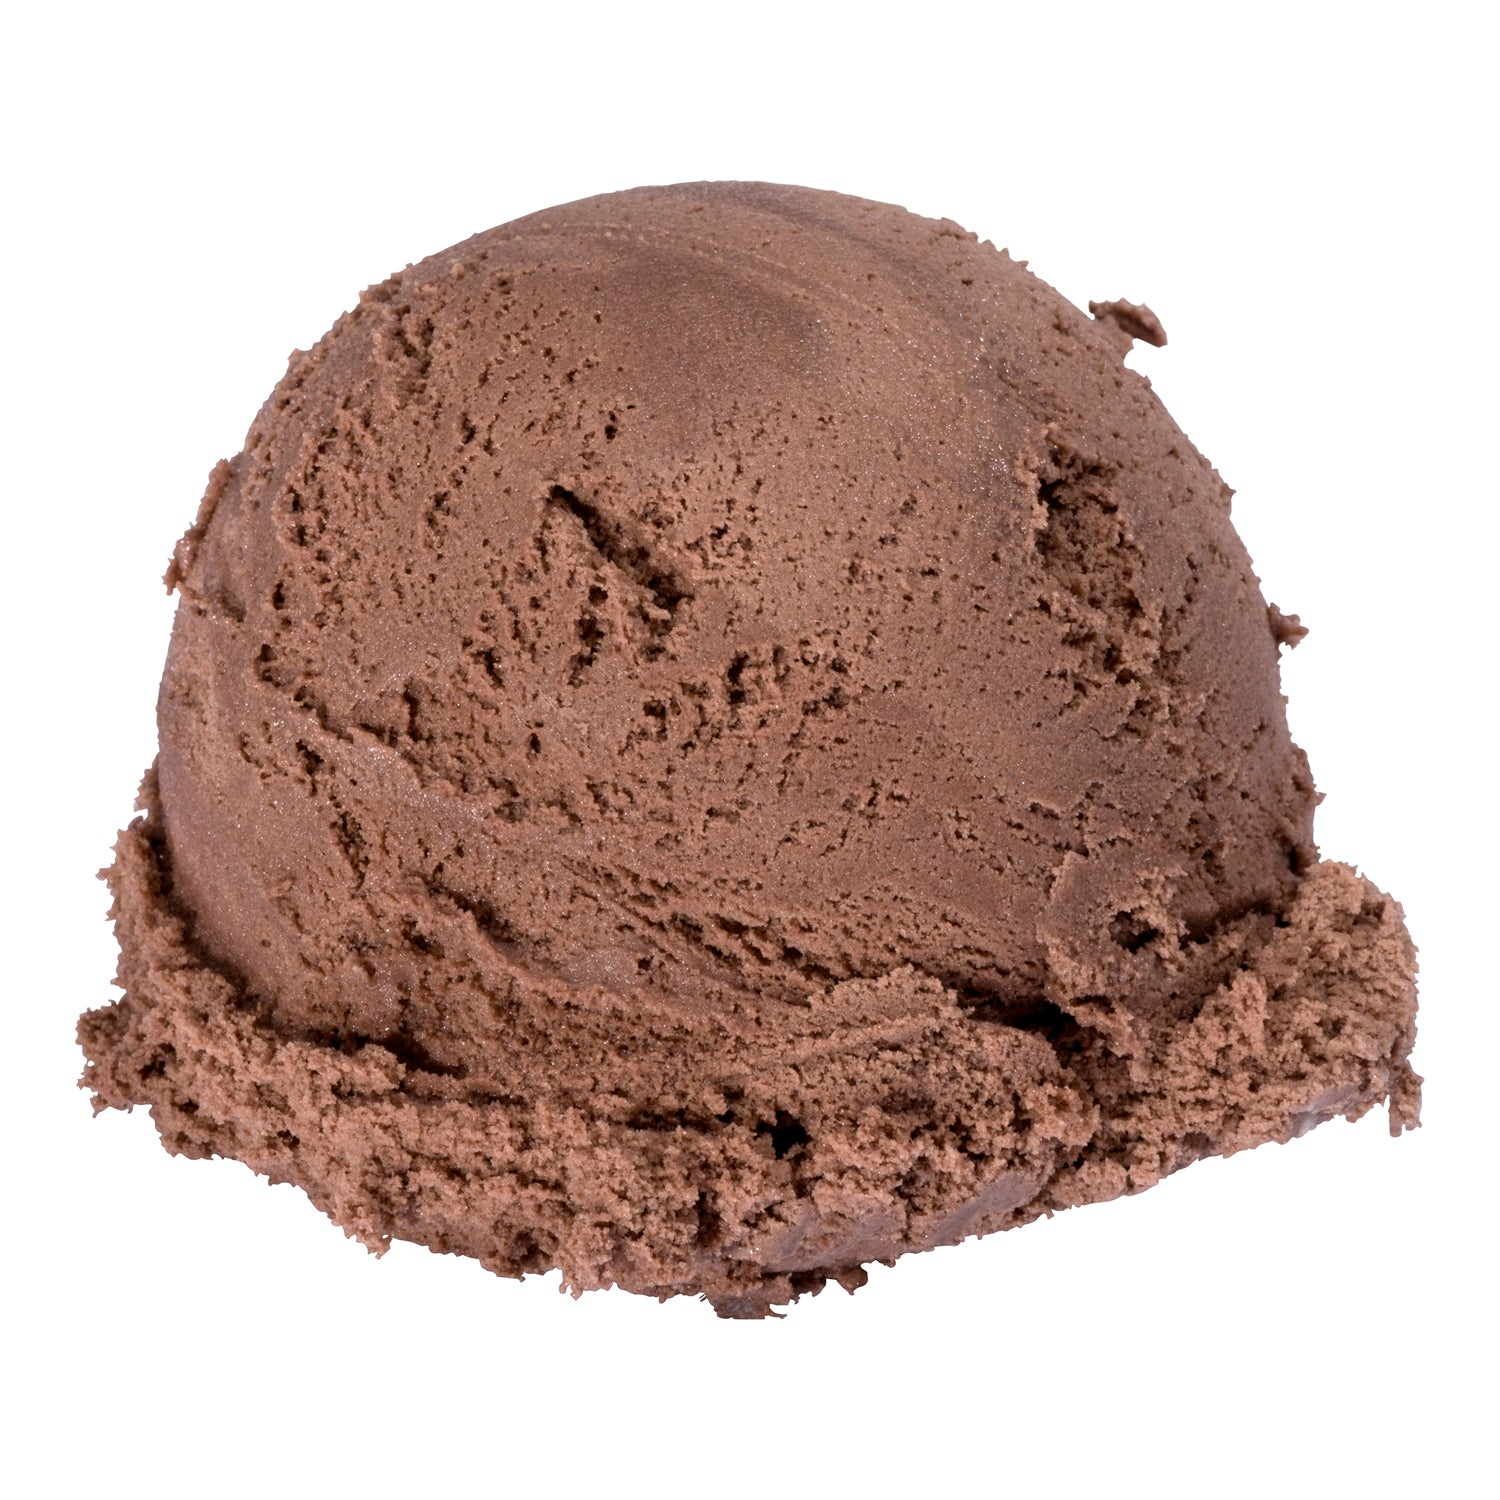 Wholesome Farms Chocolate Ice Cream 4 L - 2 Pack [$3.25/litre]